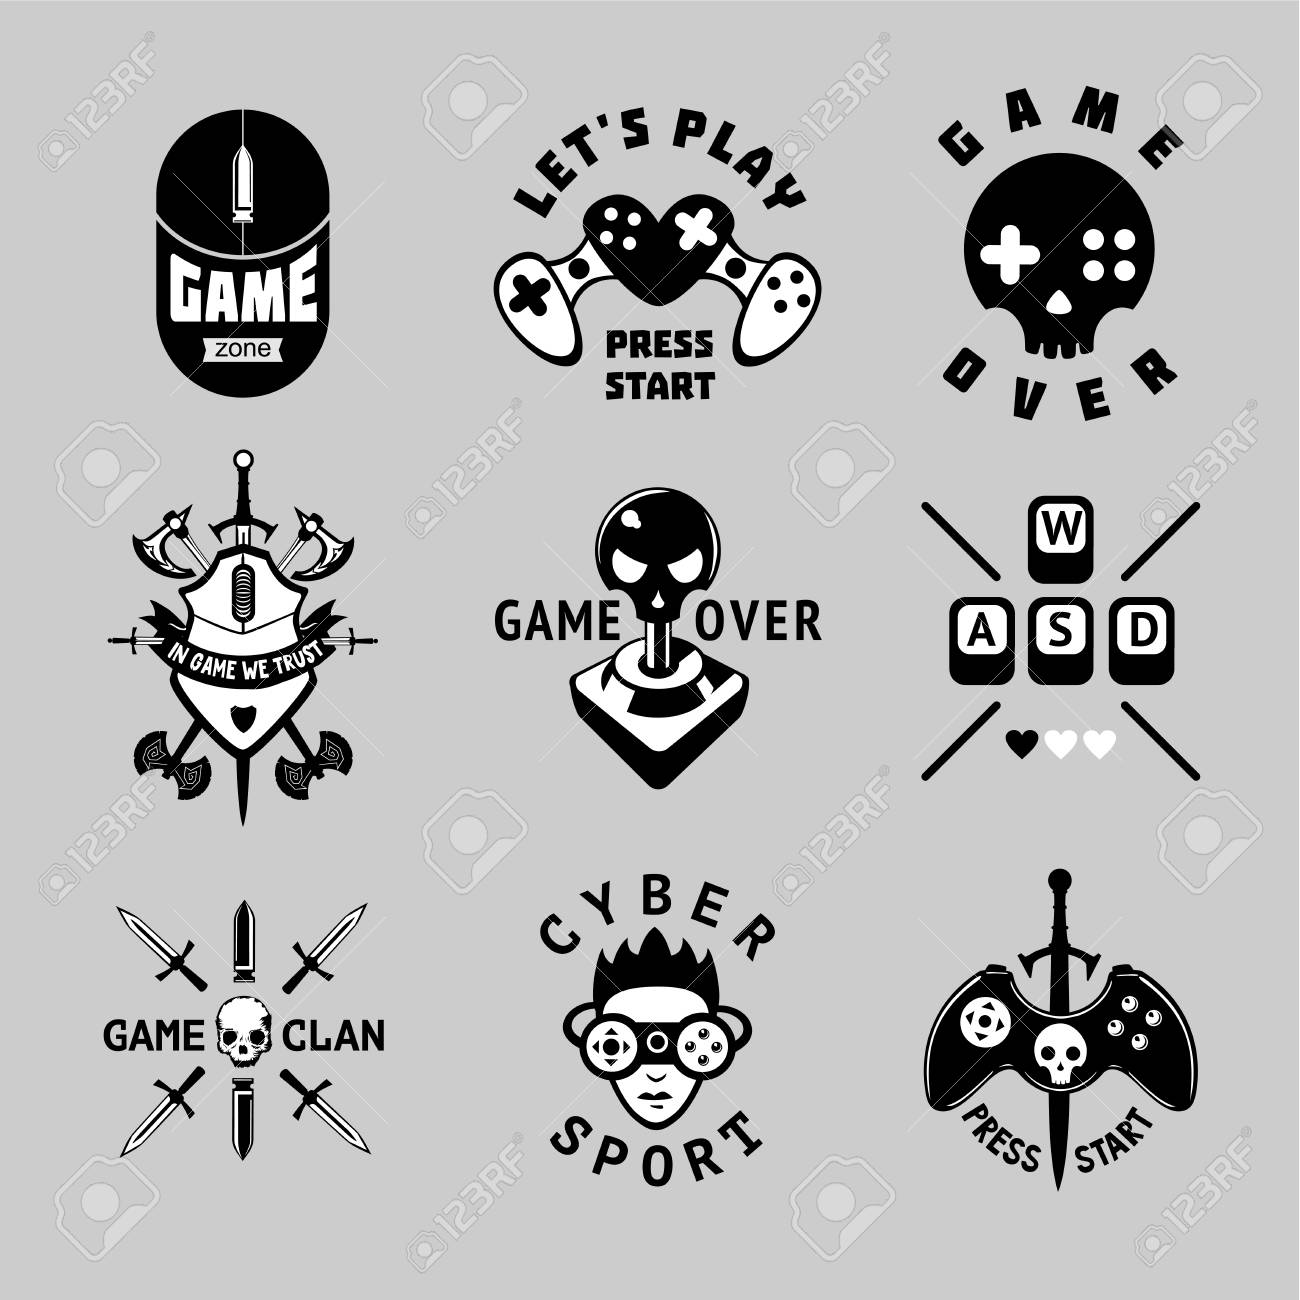 Video Games Tattoo Designs